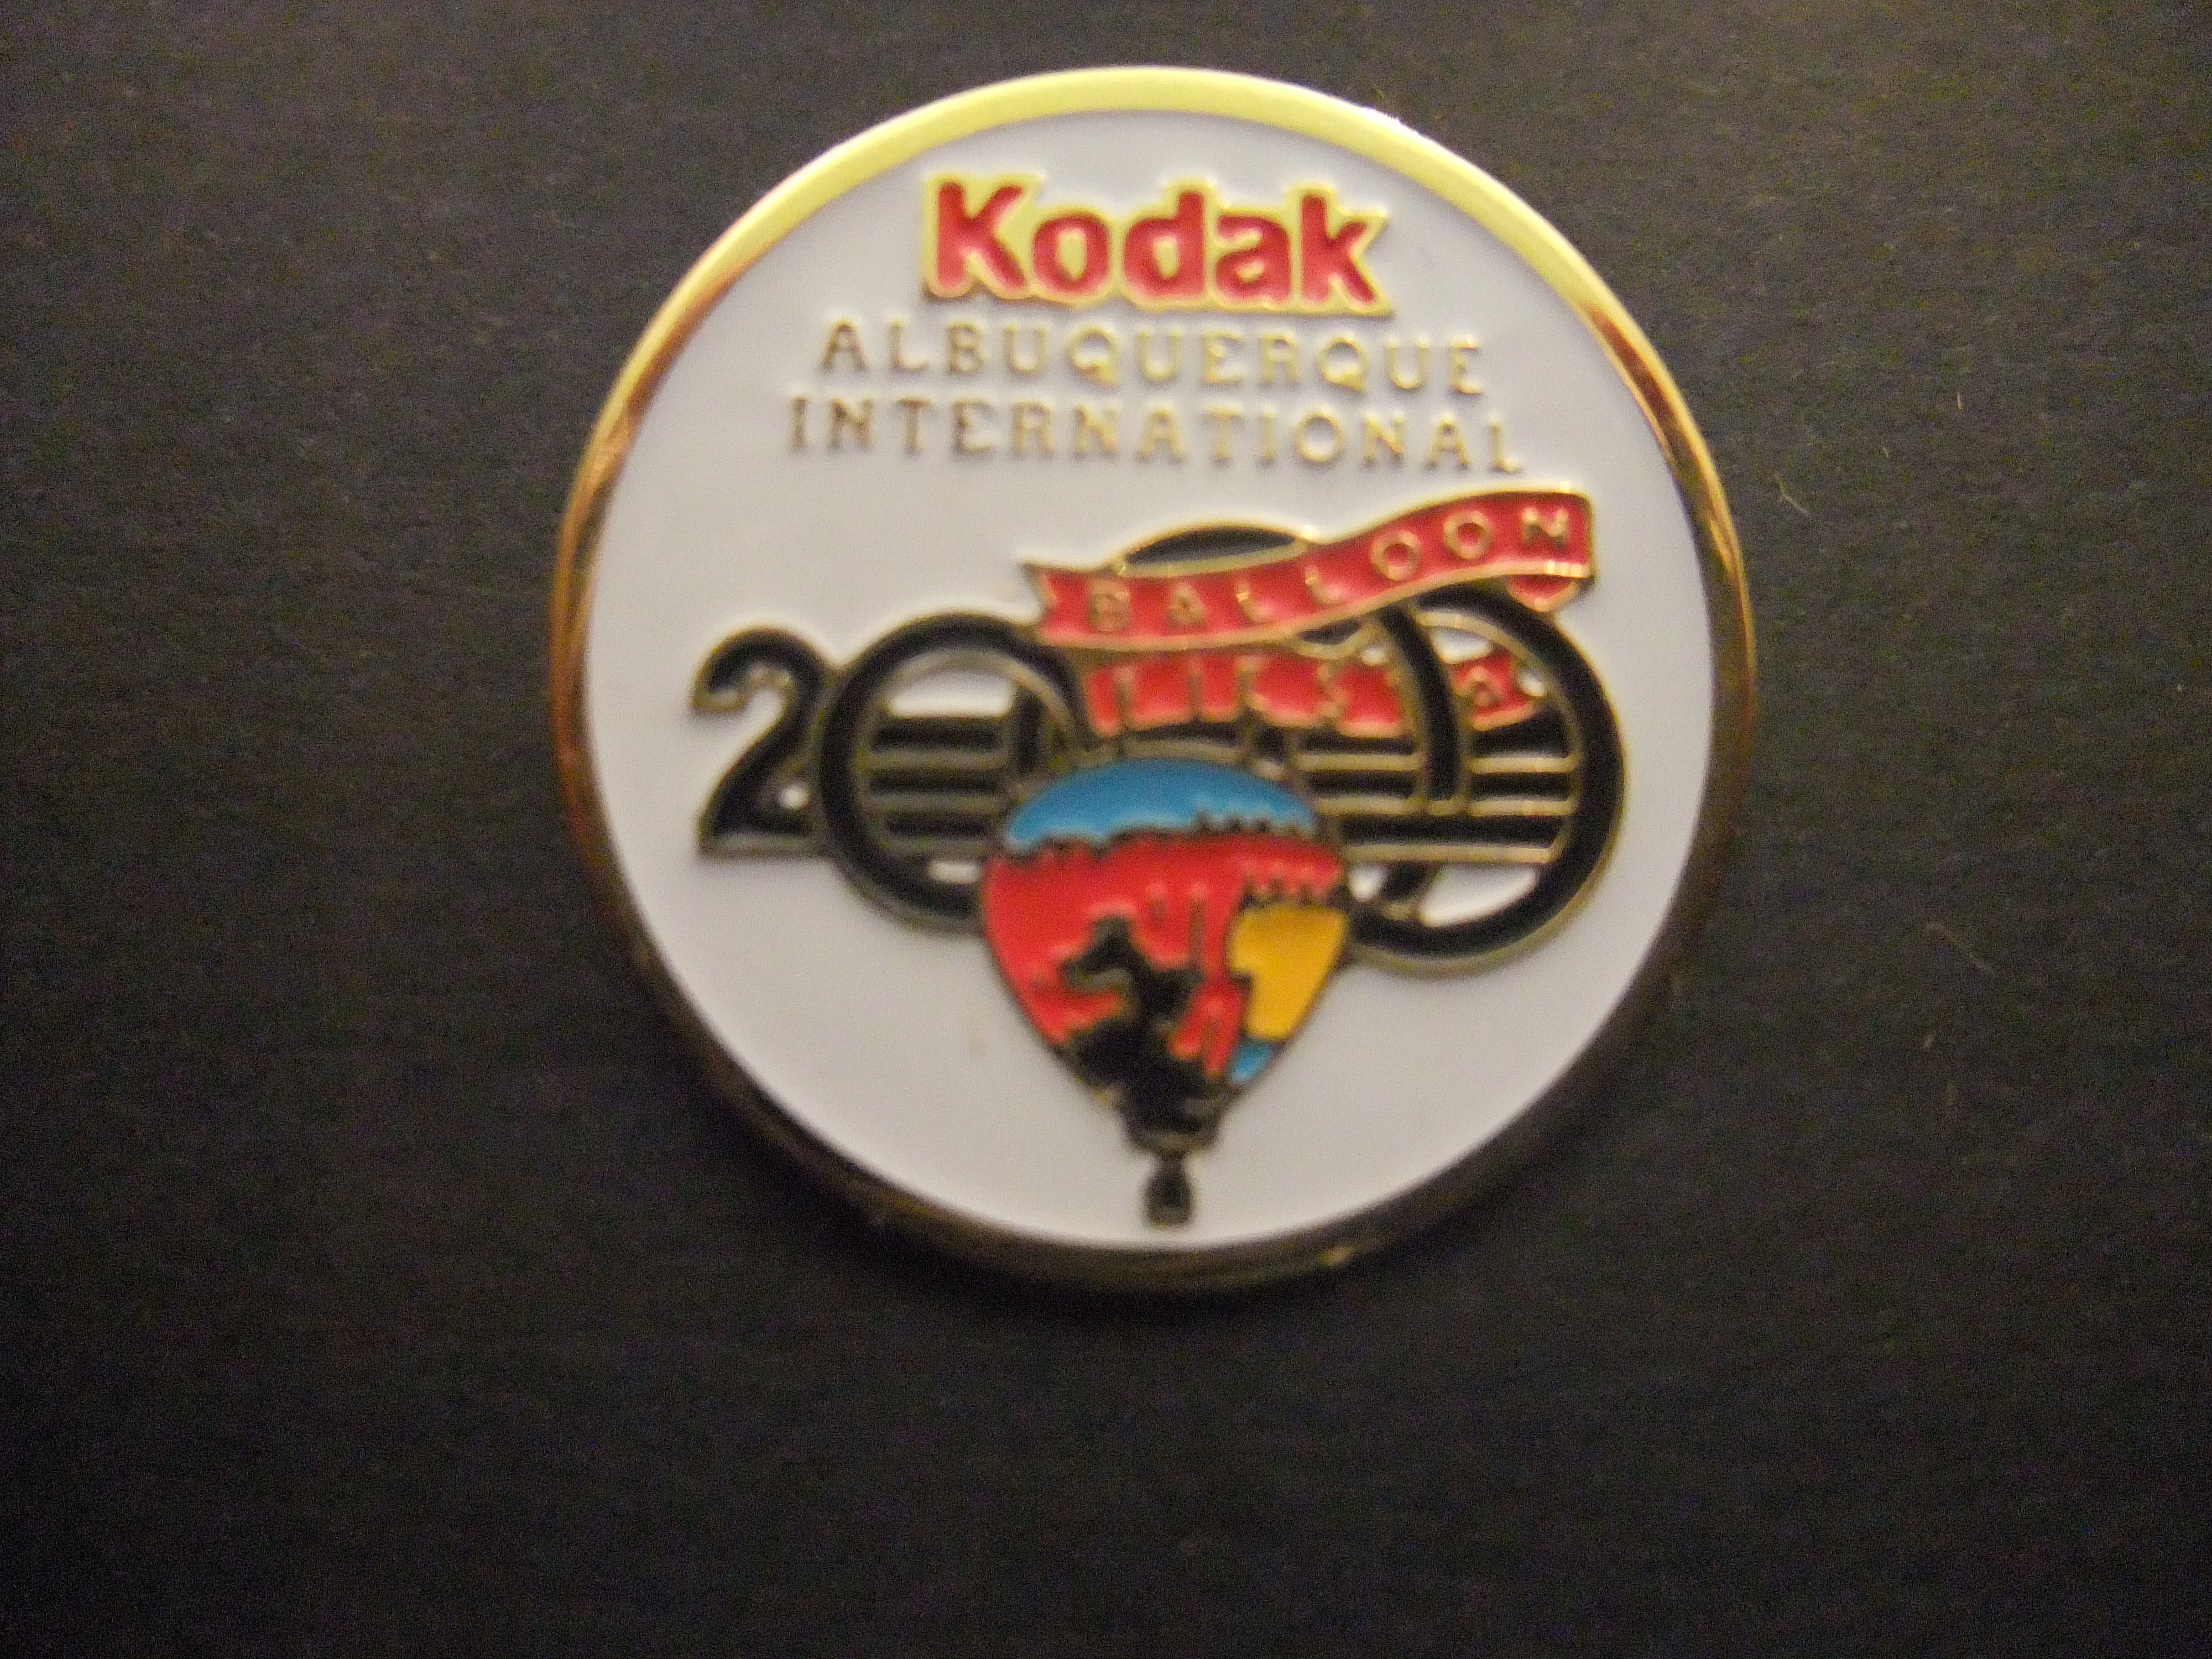 Albuquerque International Balloon Fiesta sponsor Kodak  heteluchtballon